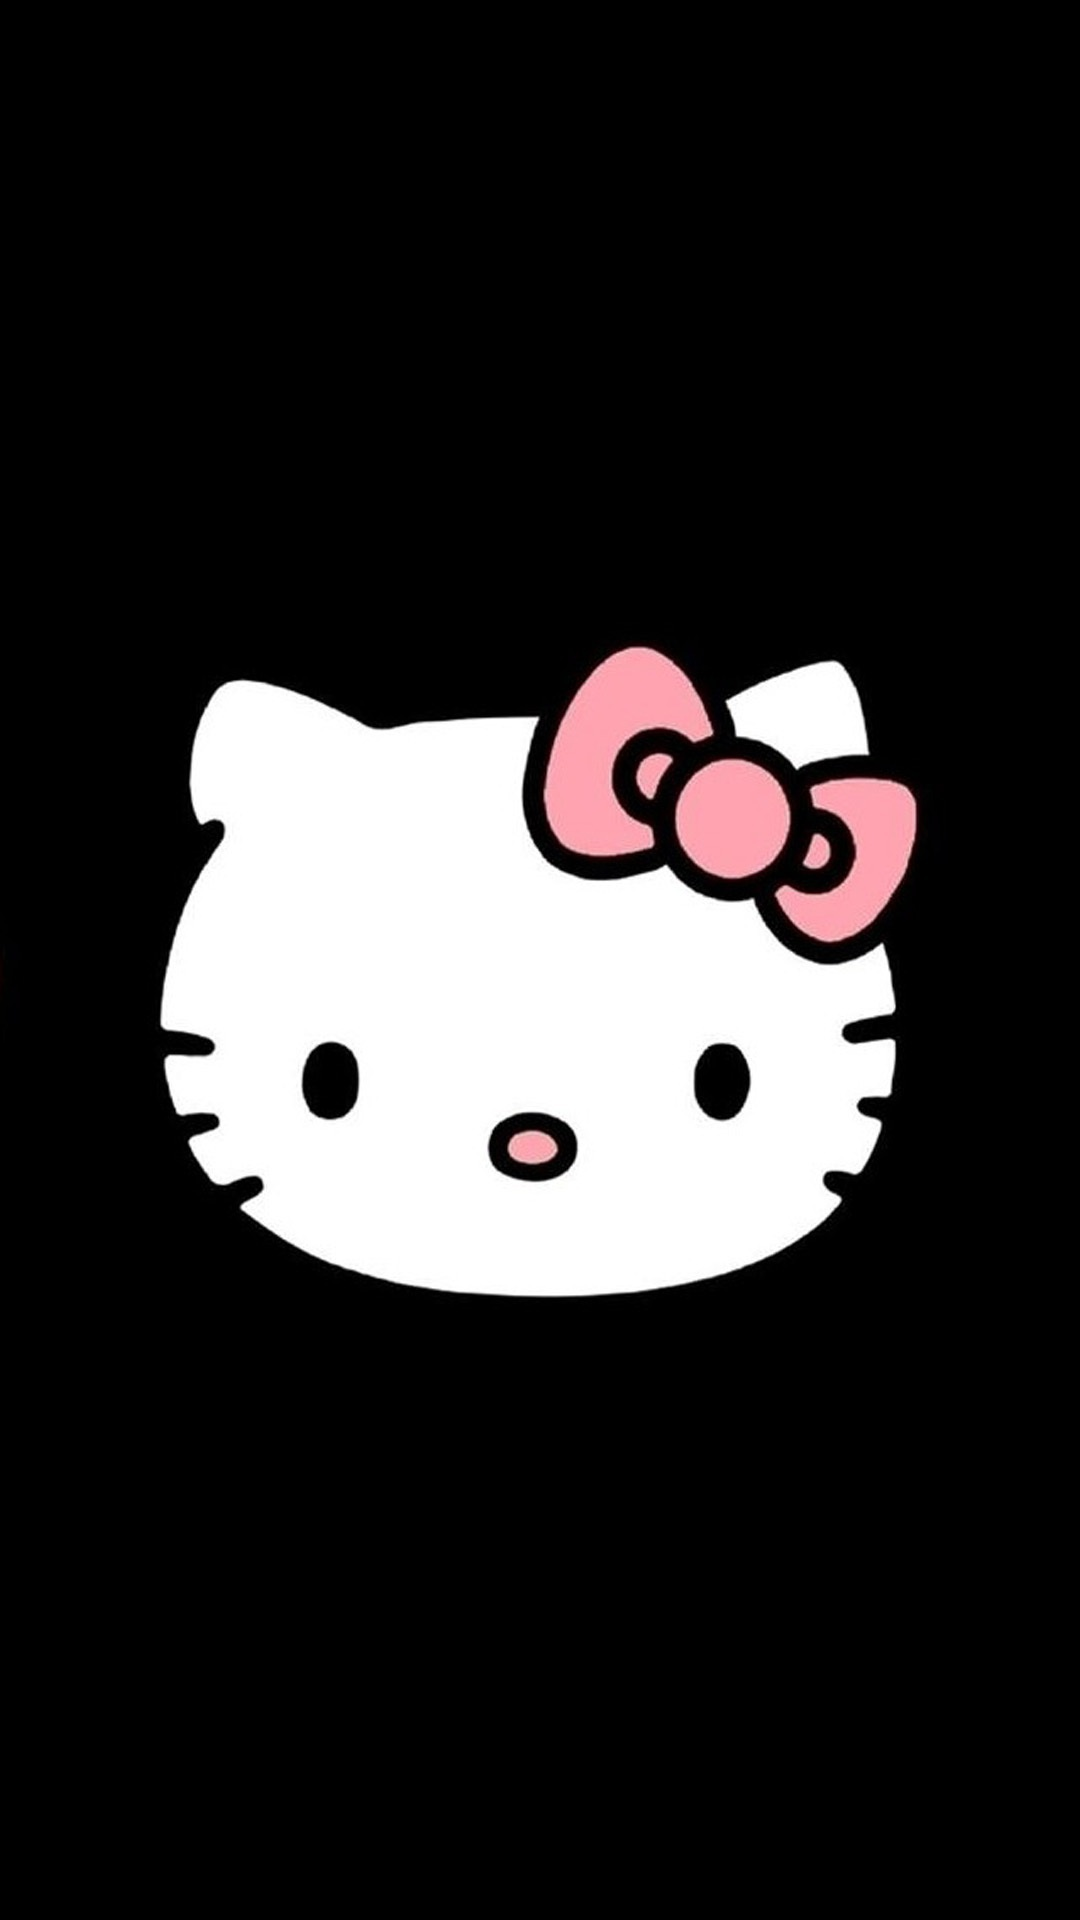 cute hello kitty wallpaper image for iphone mobile